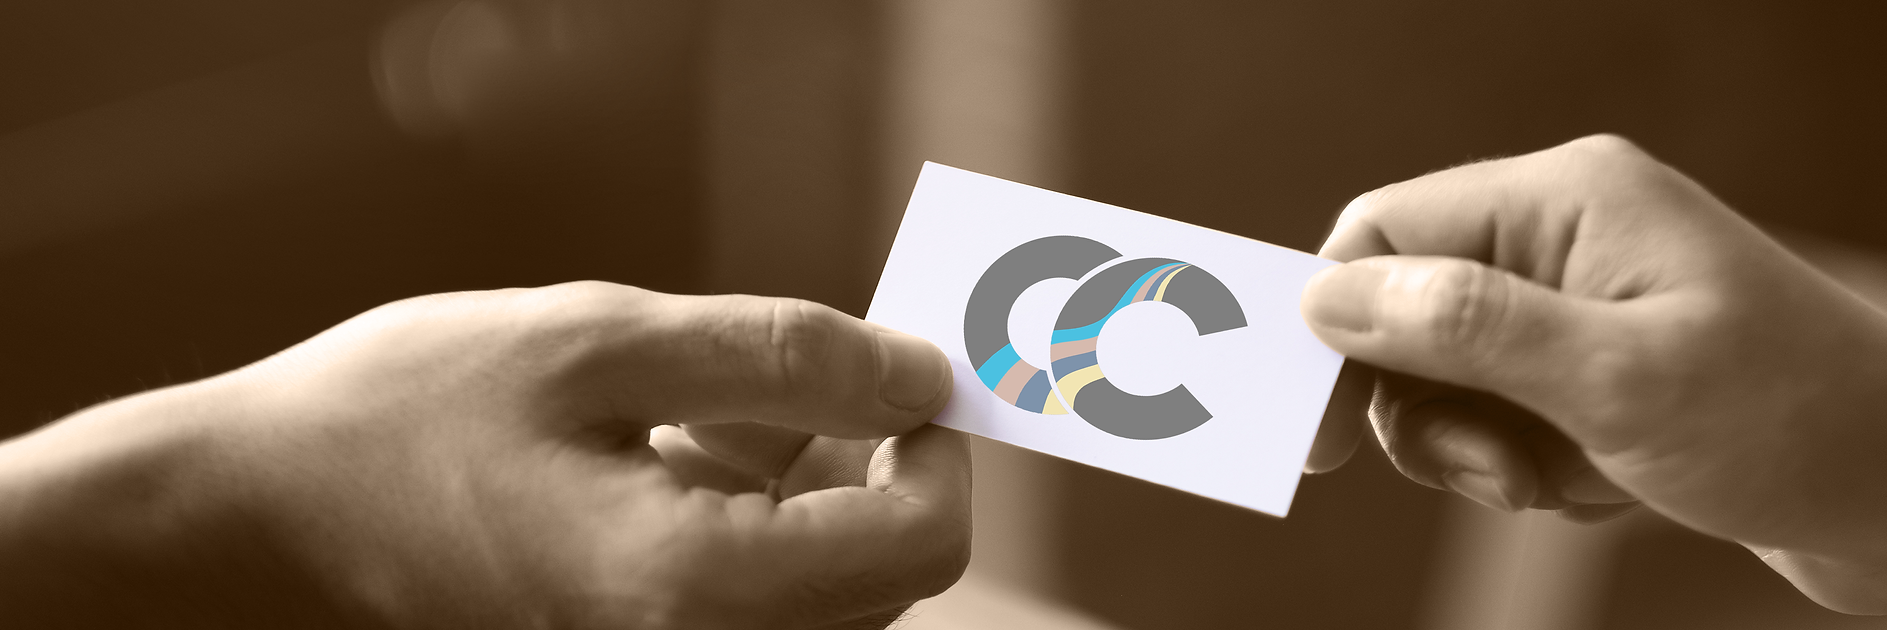 Two hands exchanging a business card with a CC logo on it.